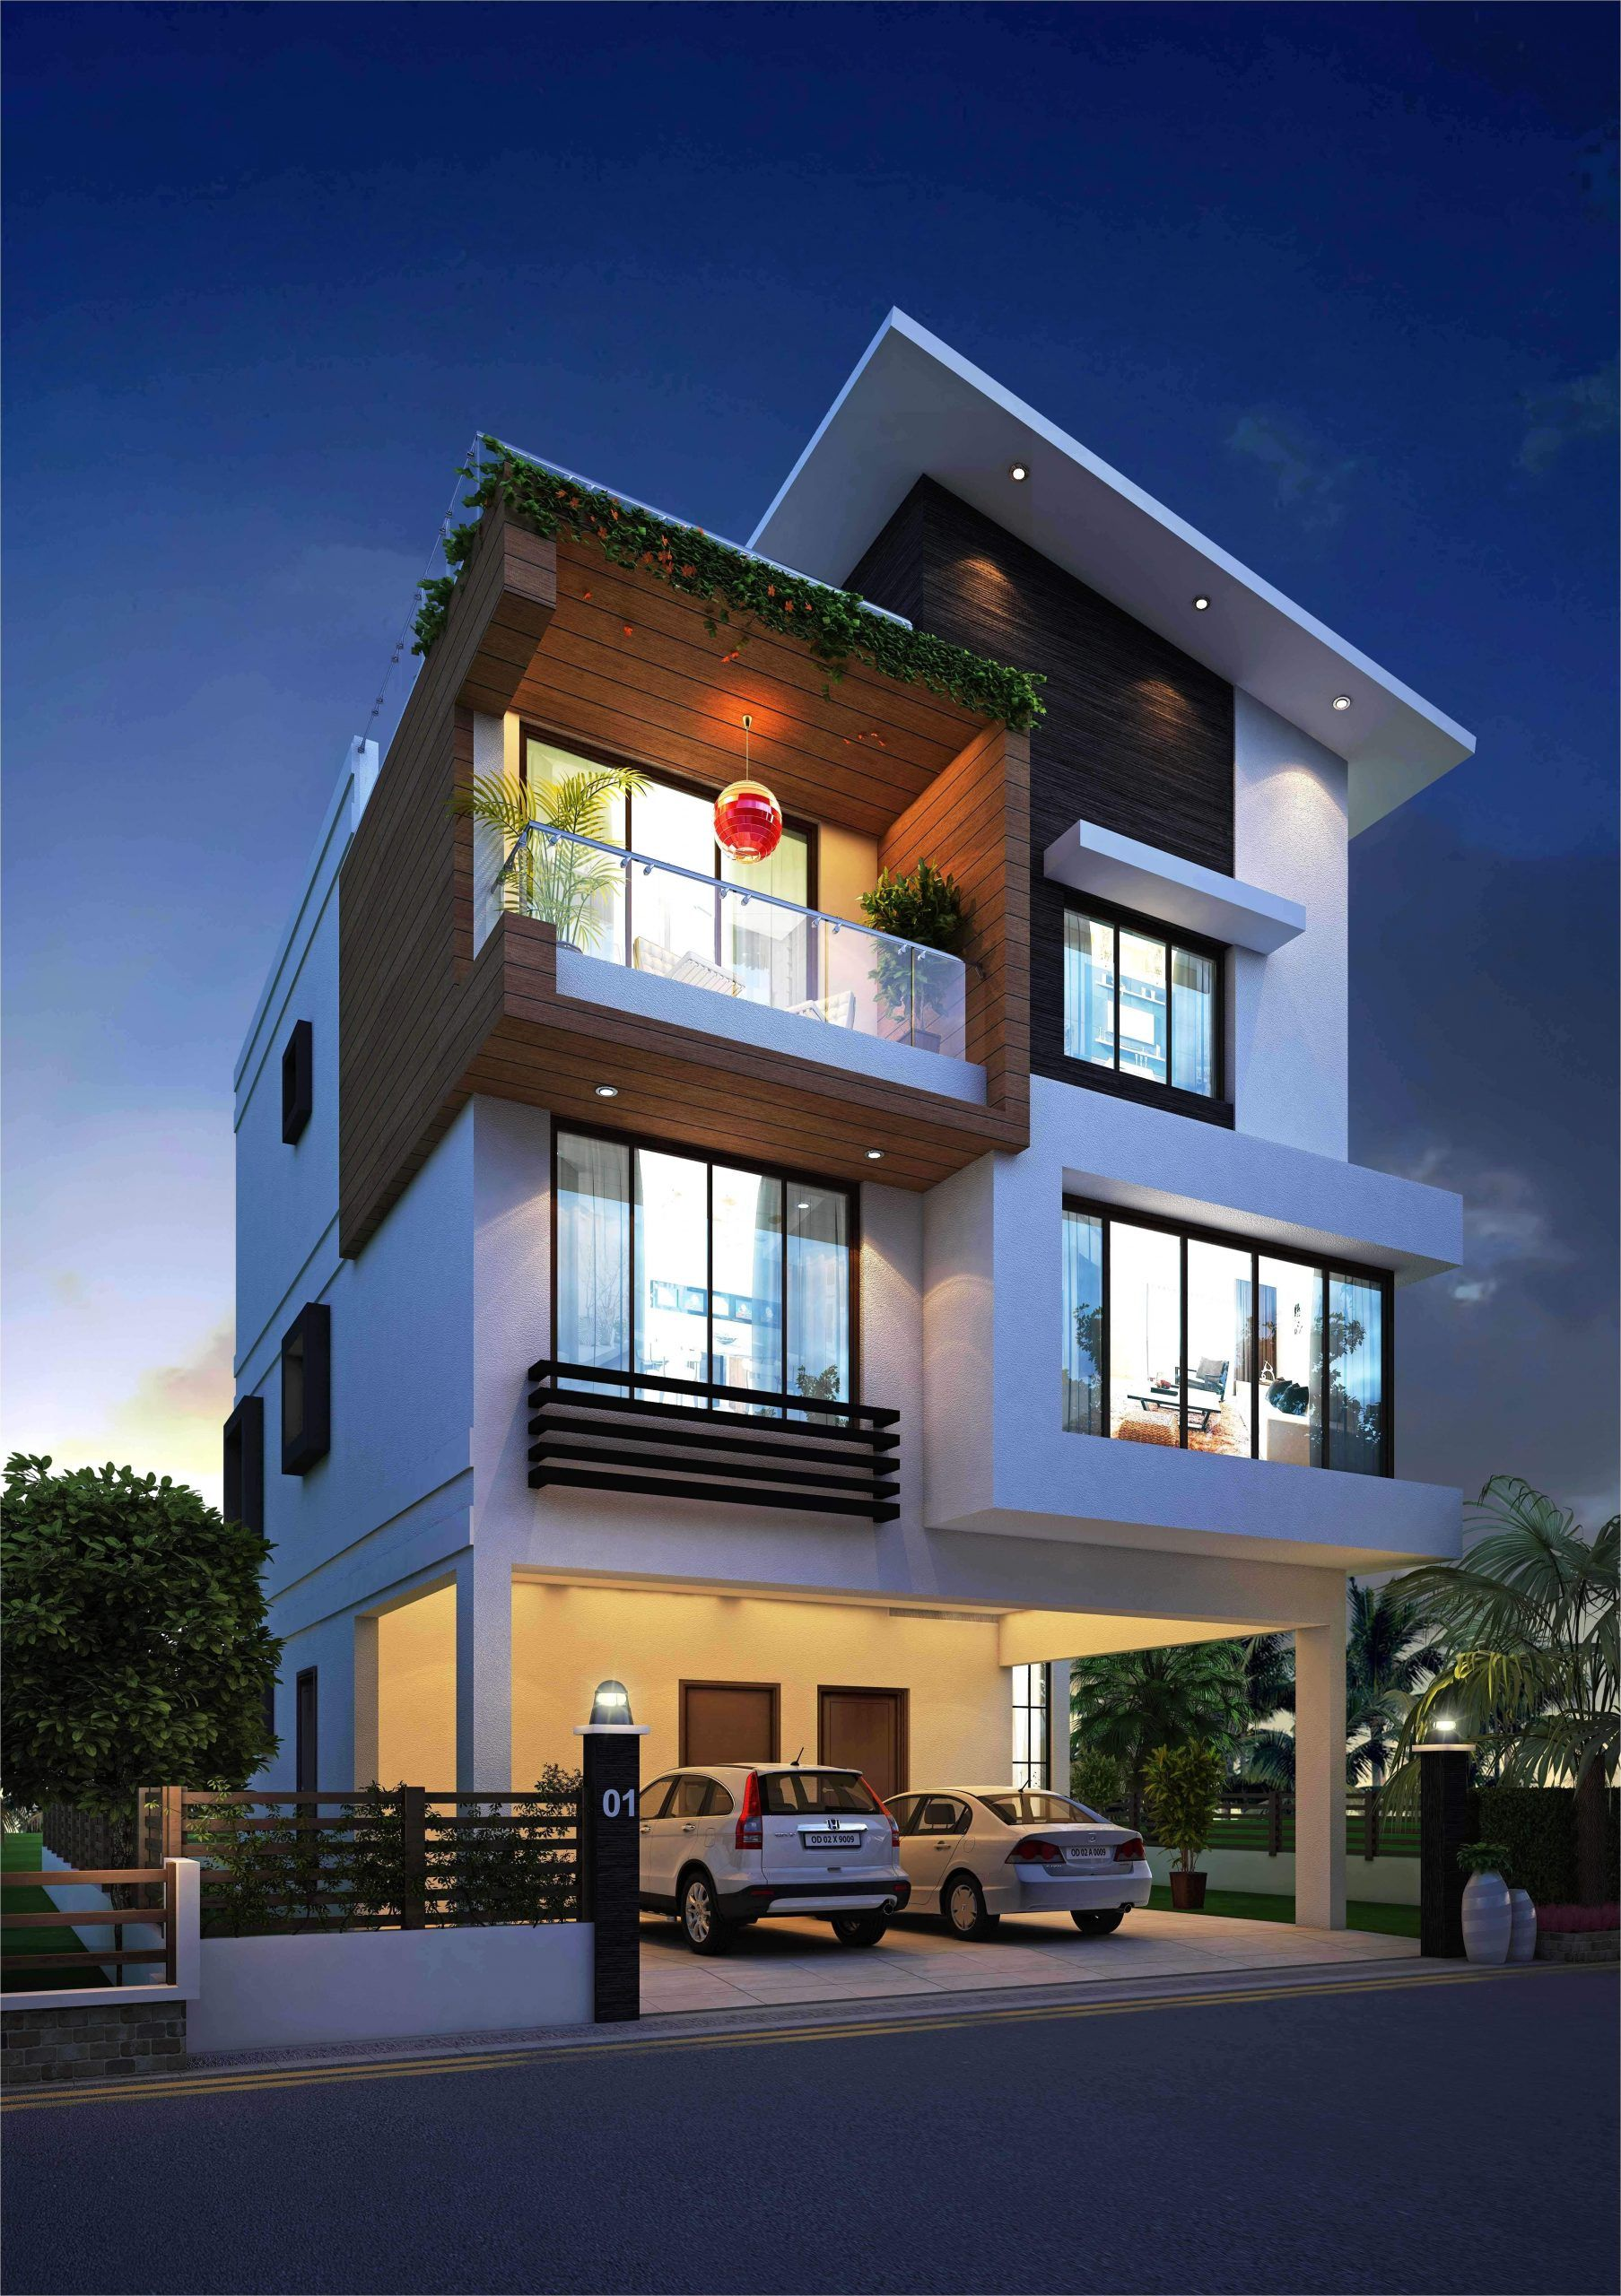 Build A House For 100k 2021 In 2020 Modern Minecraft Houses Minecraft House Designs House Designs Exterior